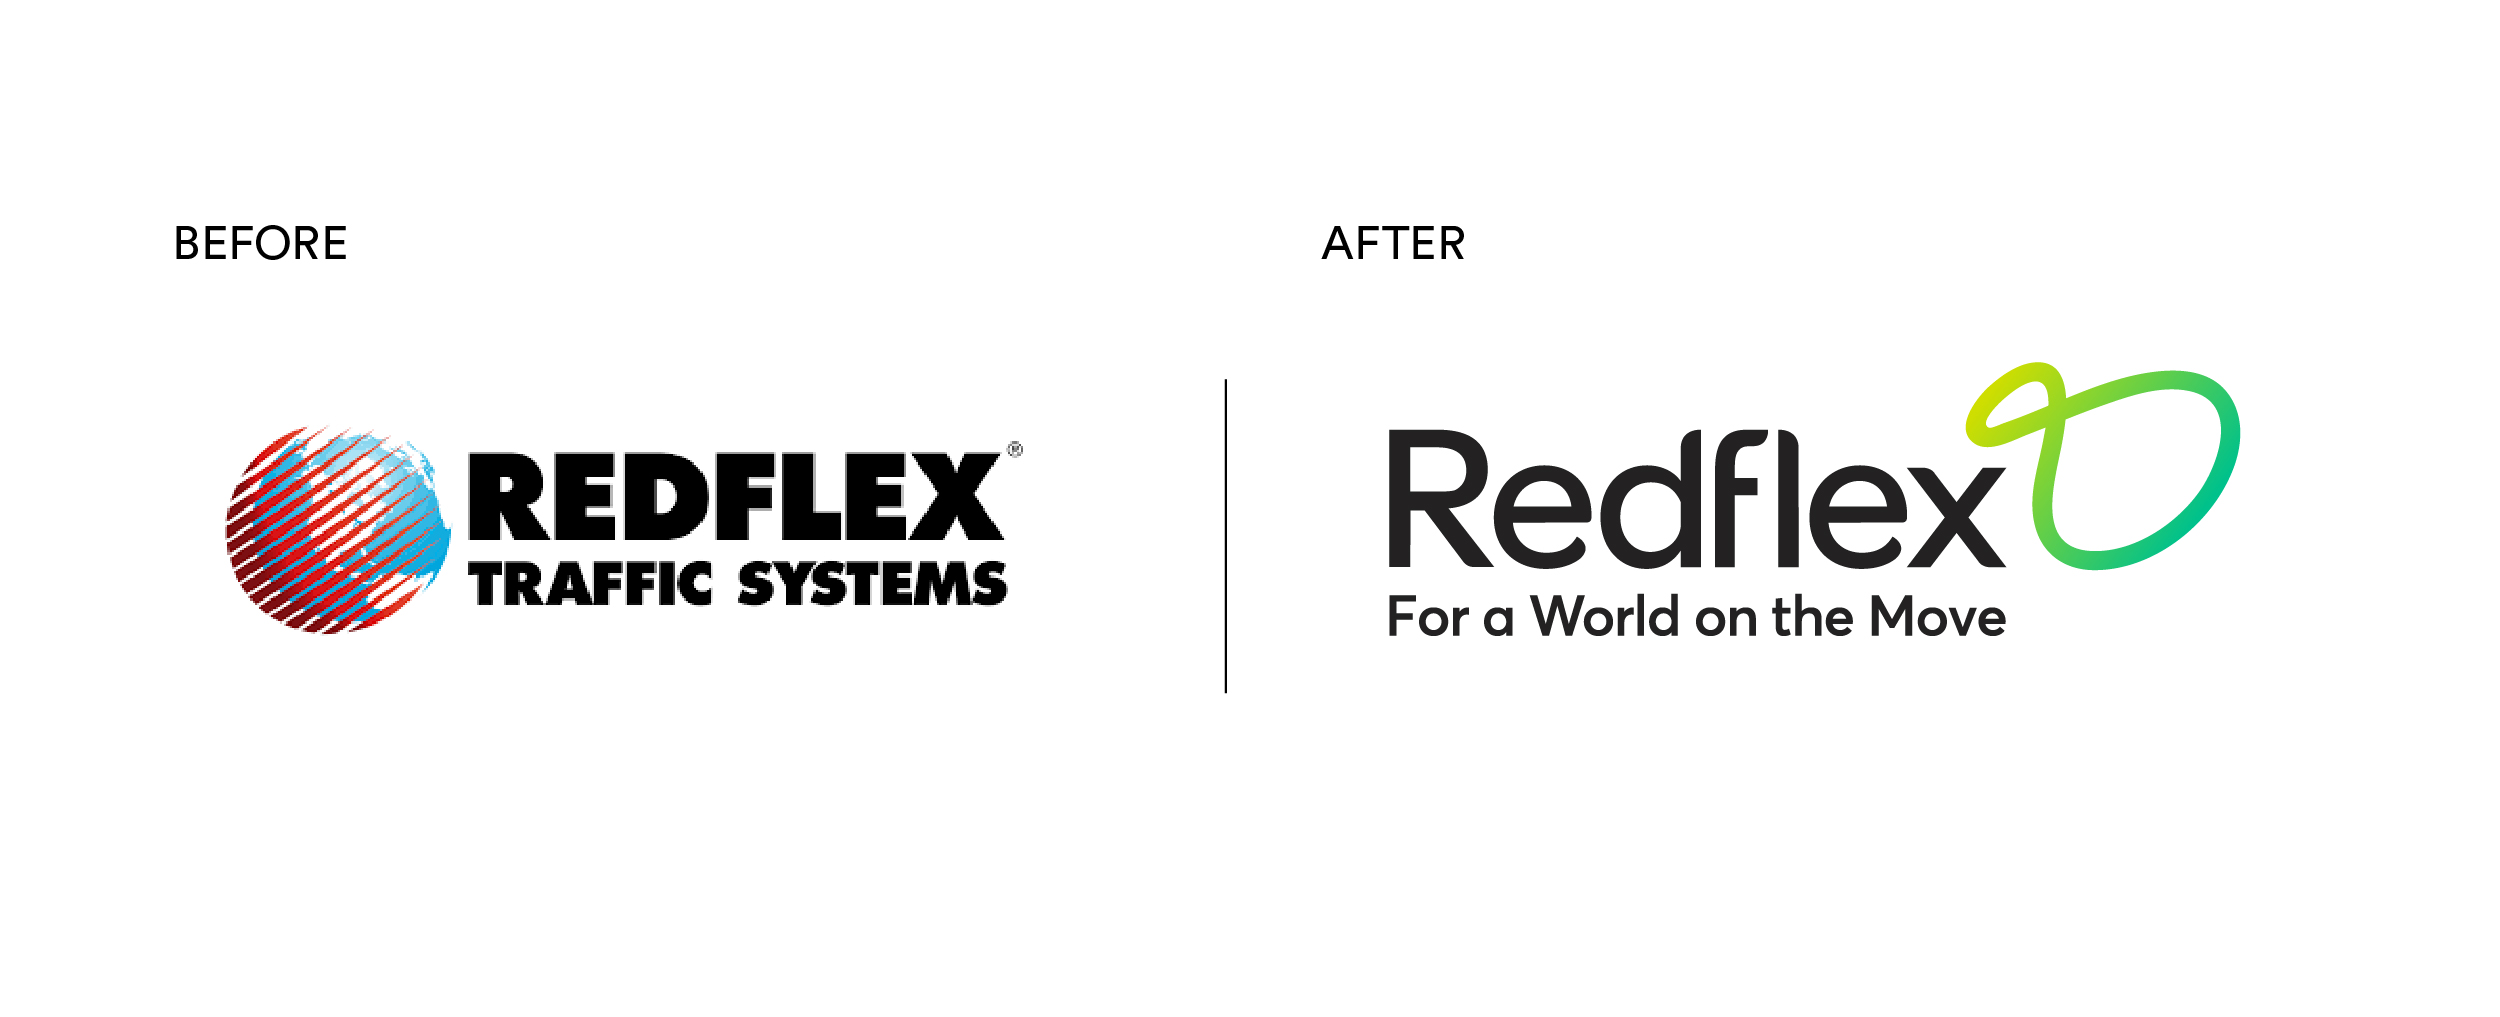 Redflex Brand Mark before and after Rebrand